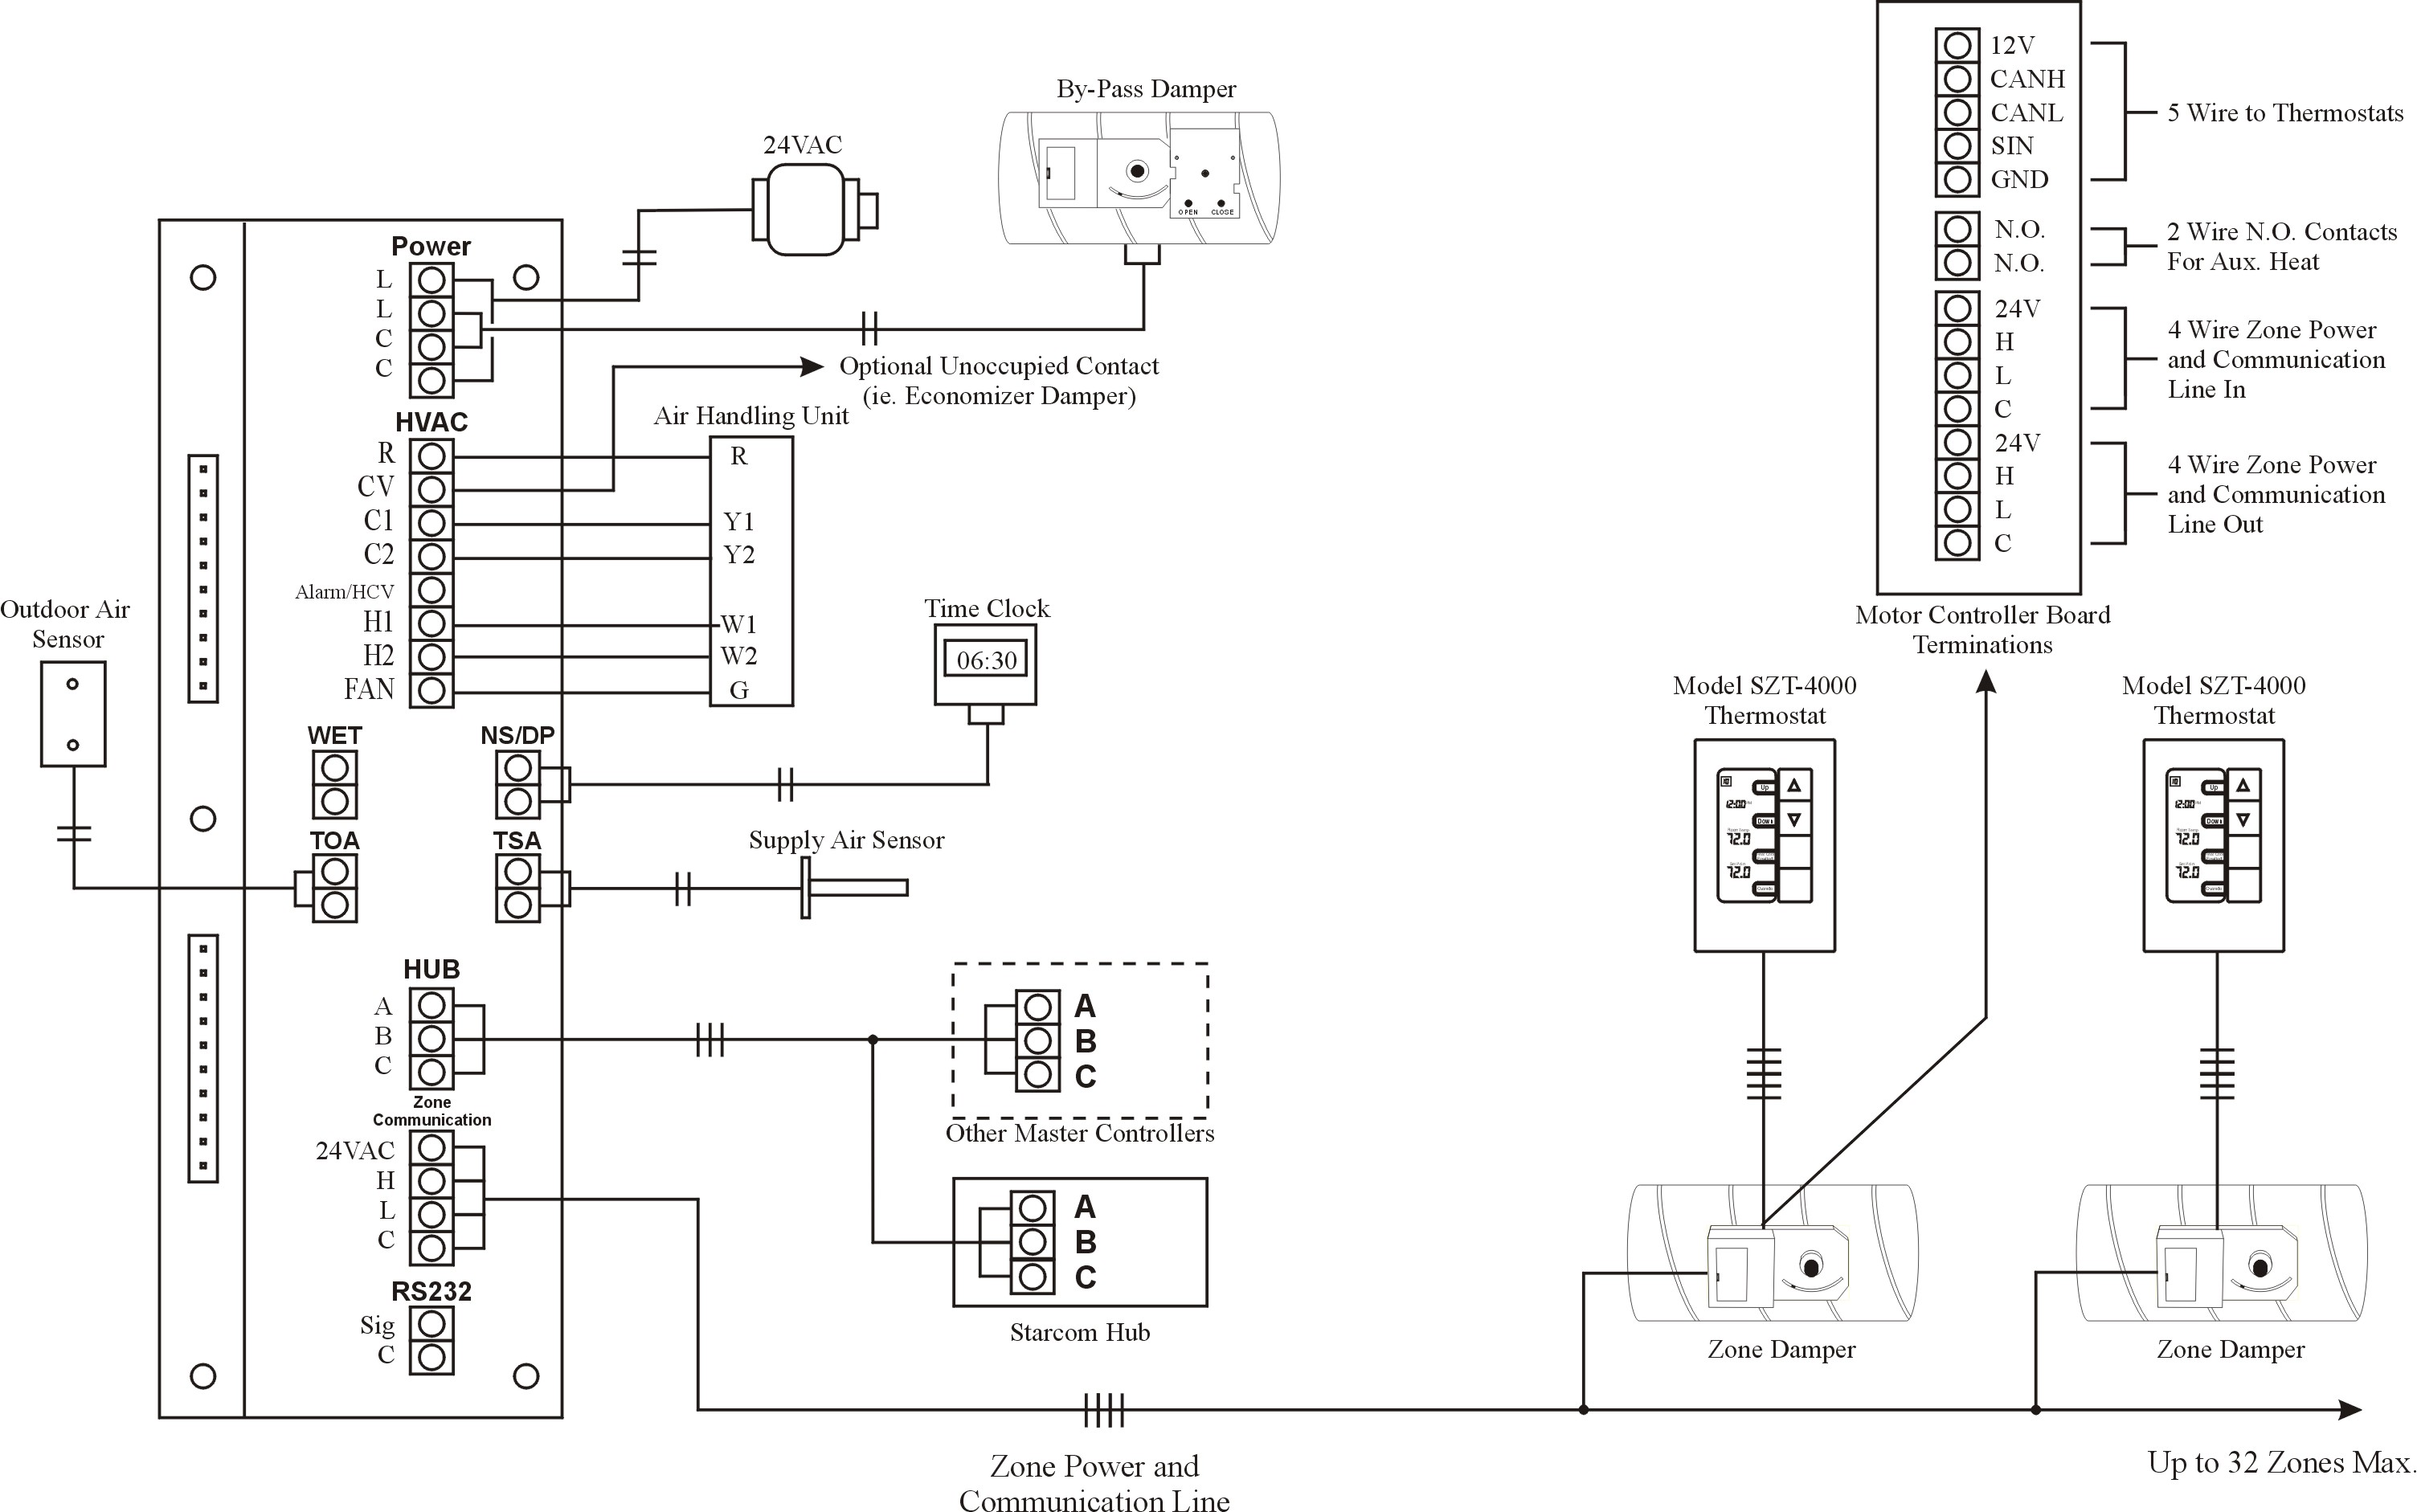 wiring diagrams zone all controls rh zoneall ca O2 Sensor Wiring Diagram O2 Sensor Wiring Diagram